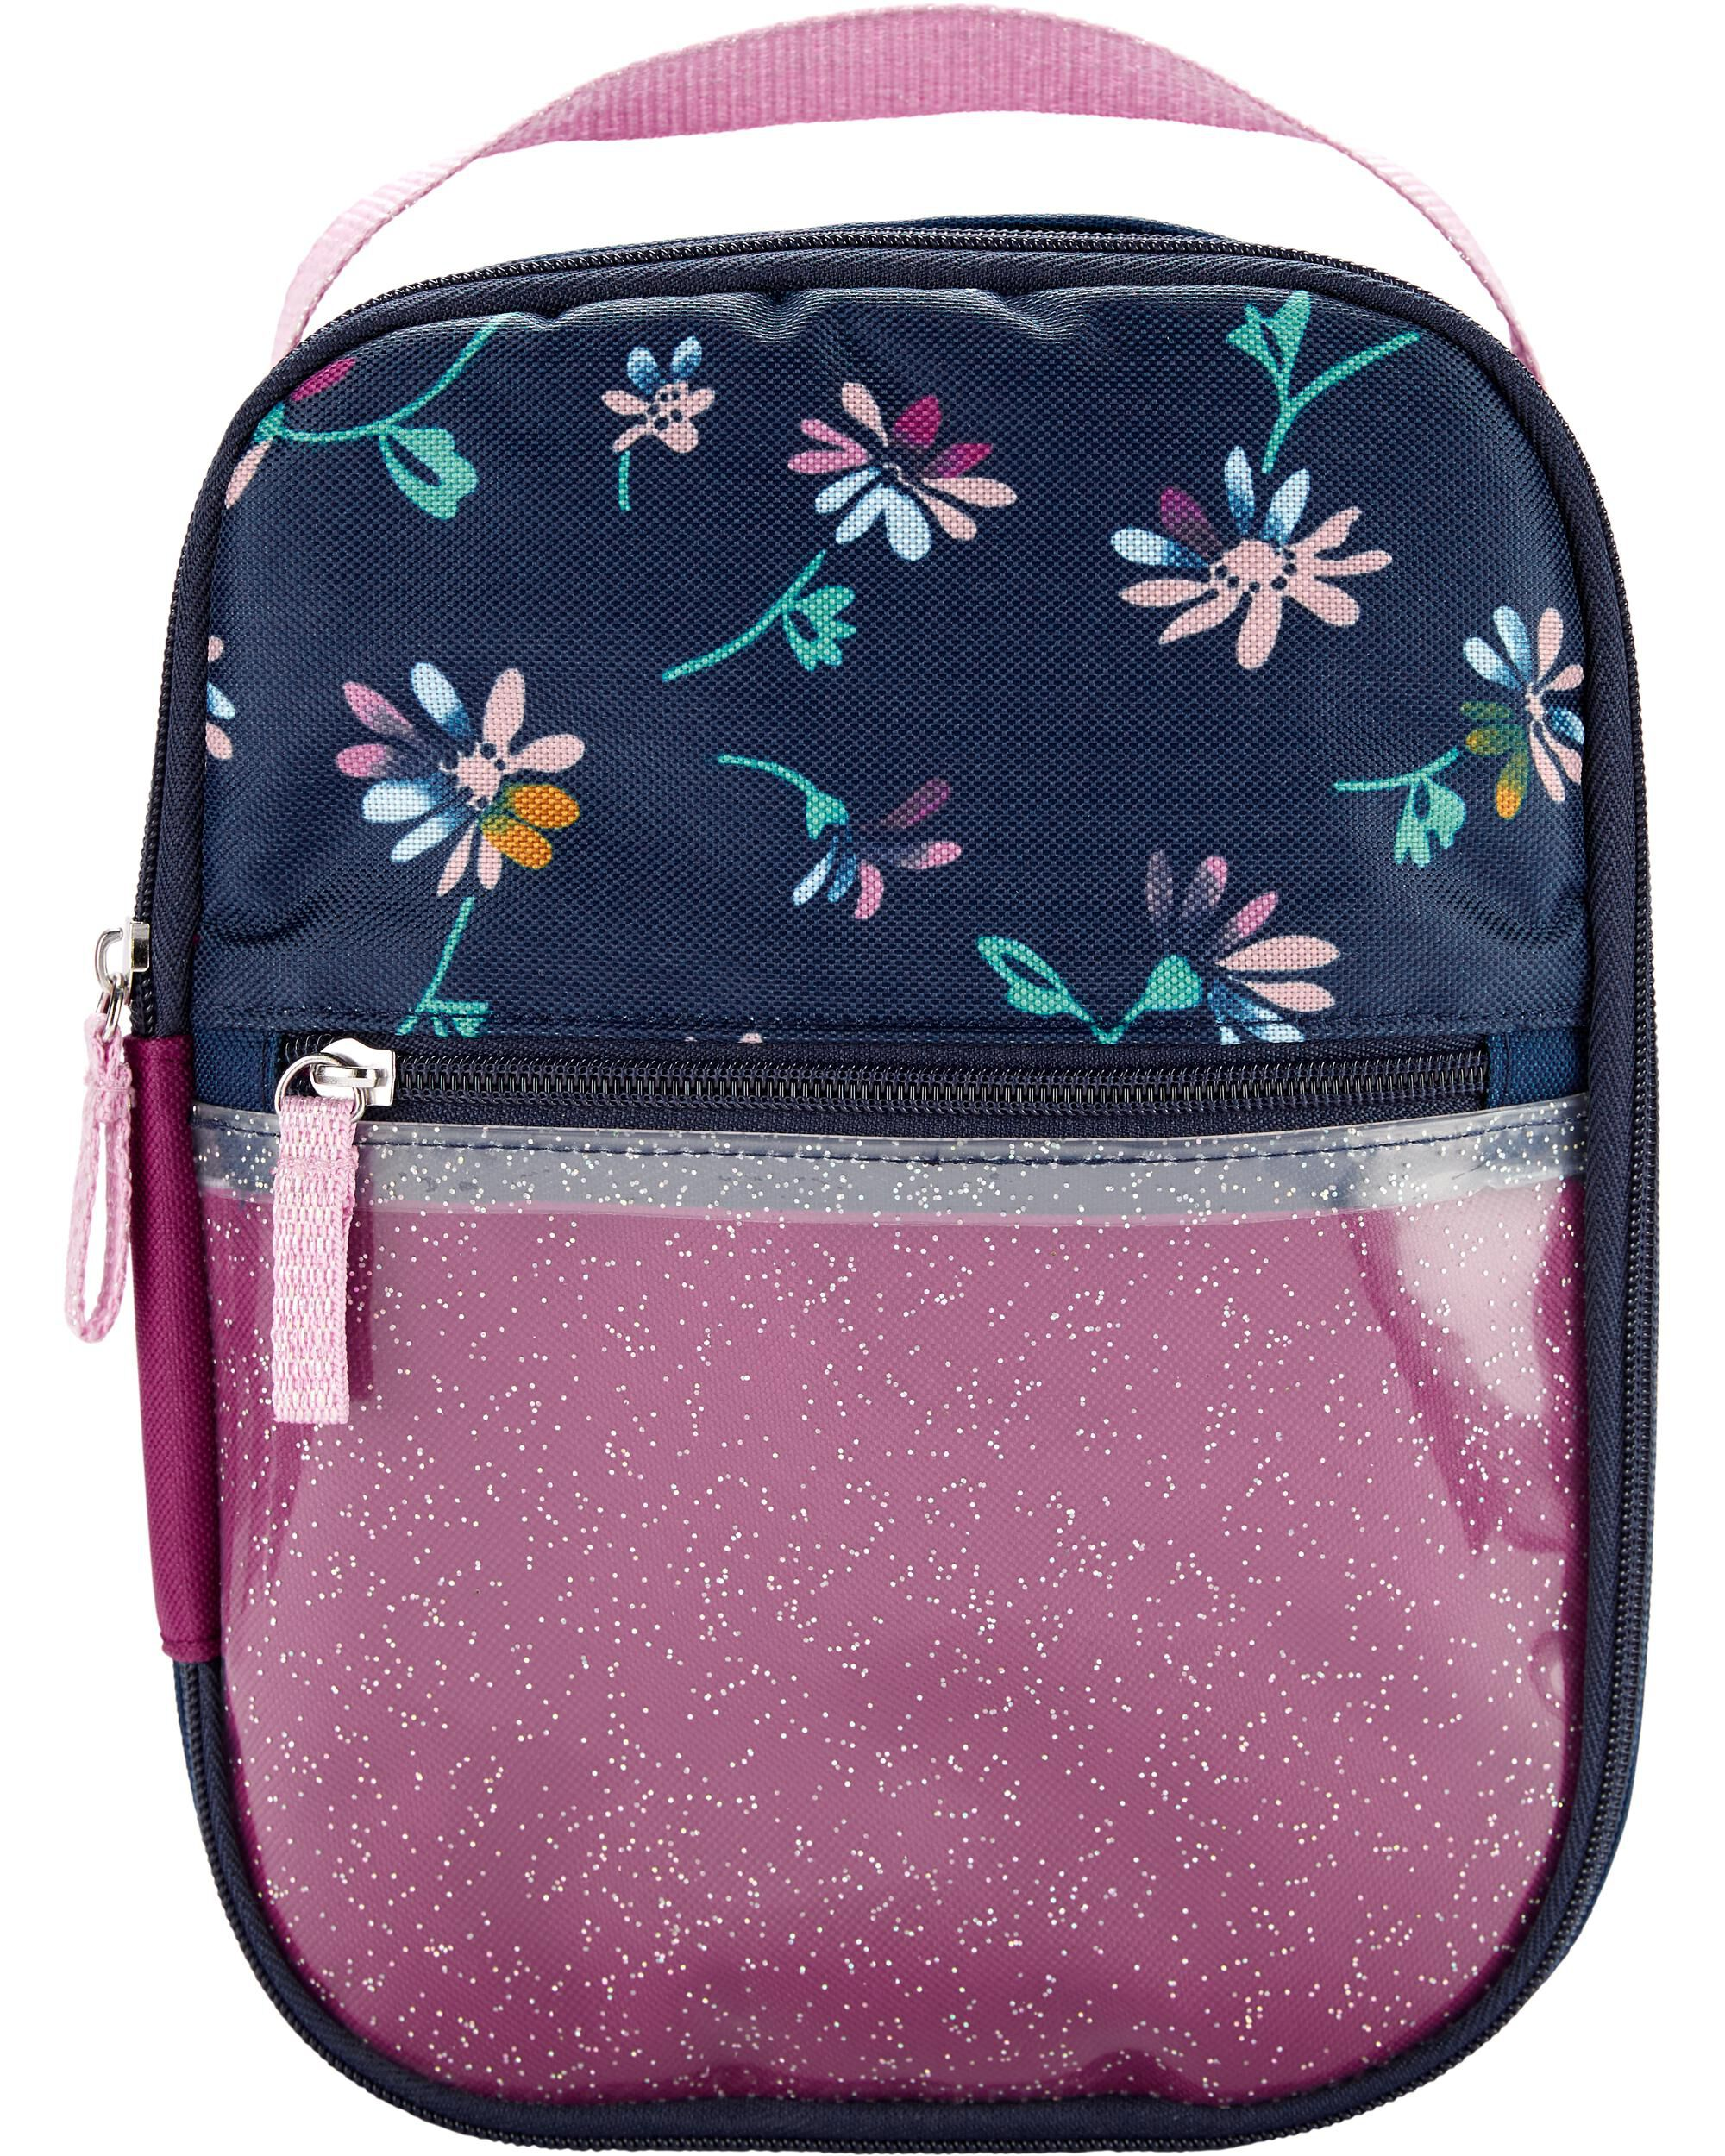 Oshkoshbgosh Floral Clear Glitter Lunch Box